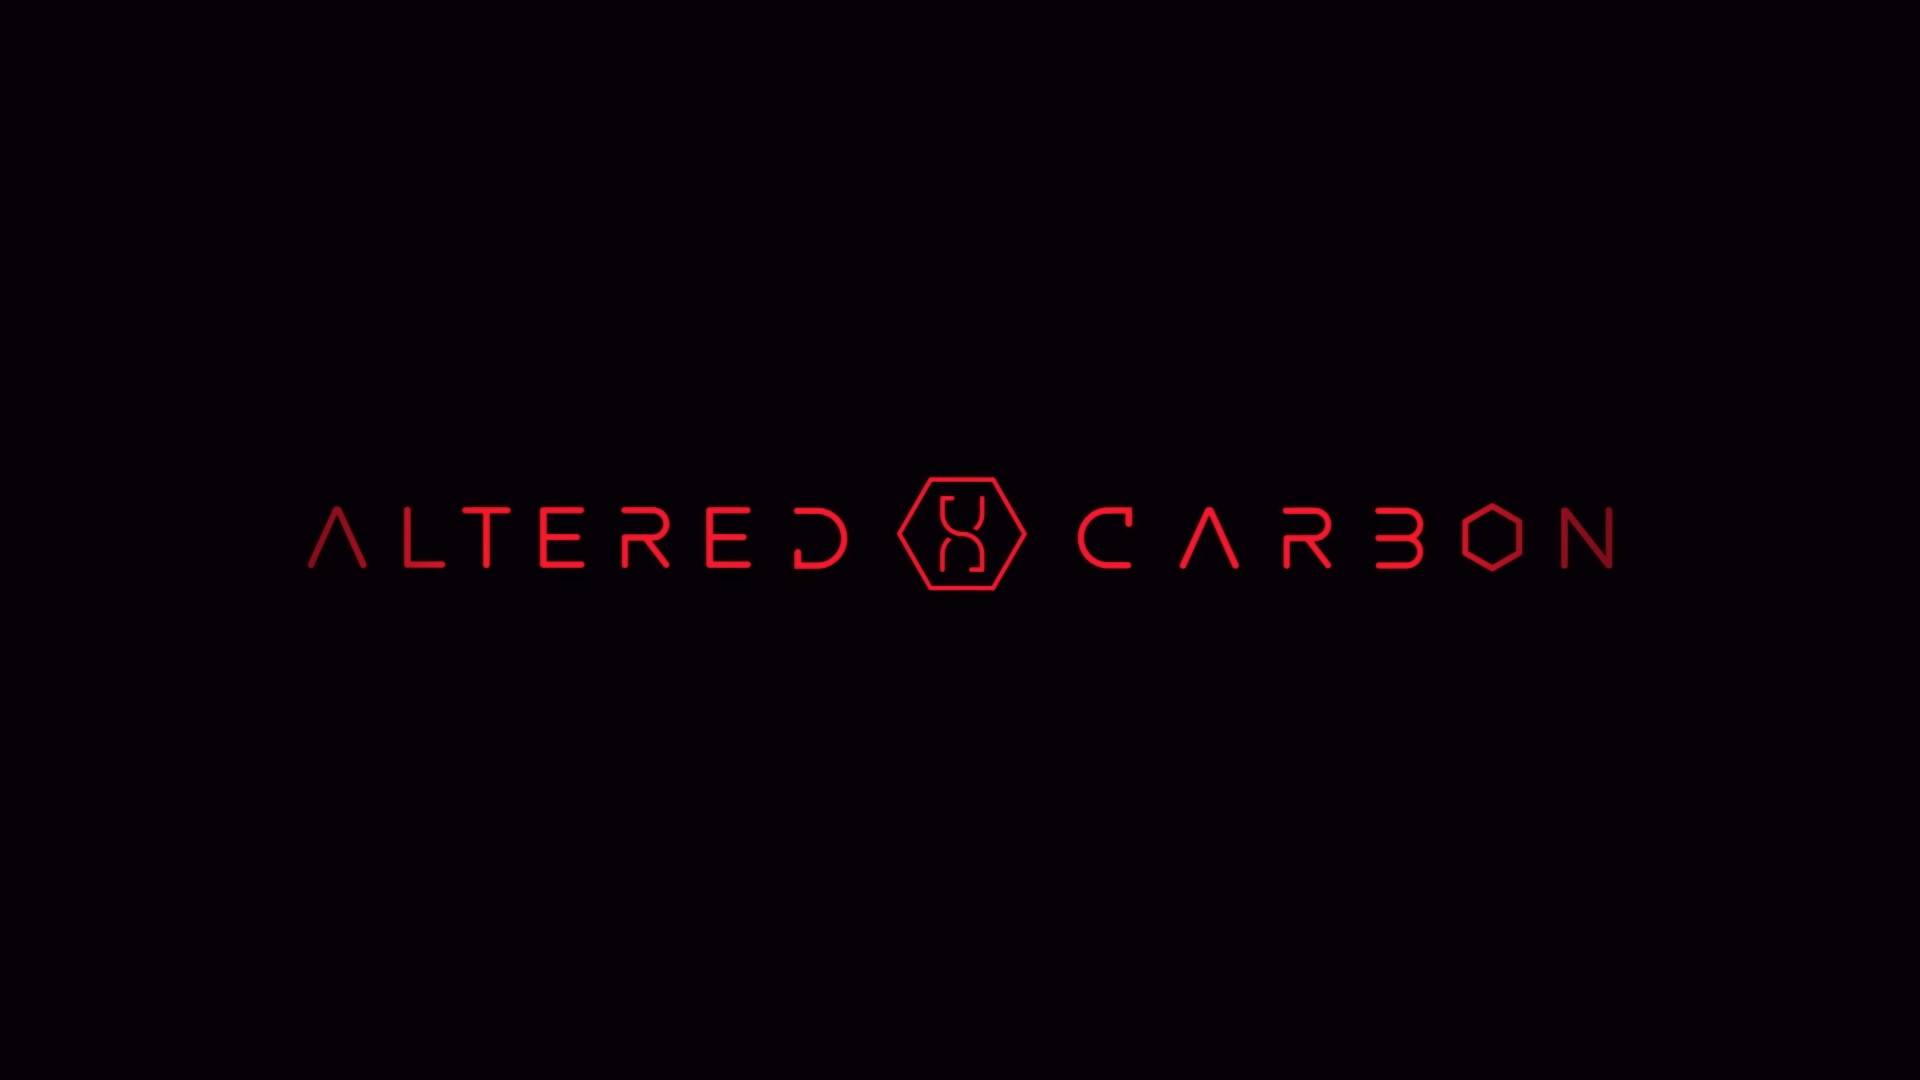 altered carbon logo desktop wallpaper 62906